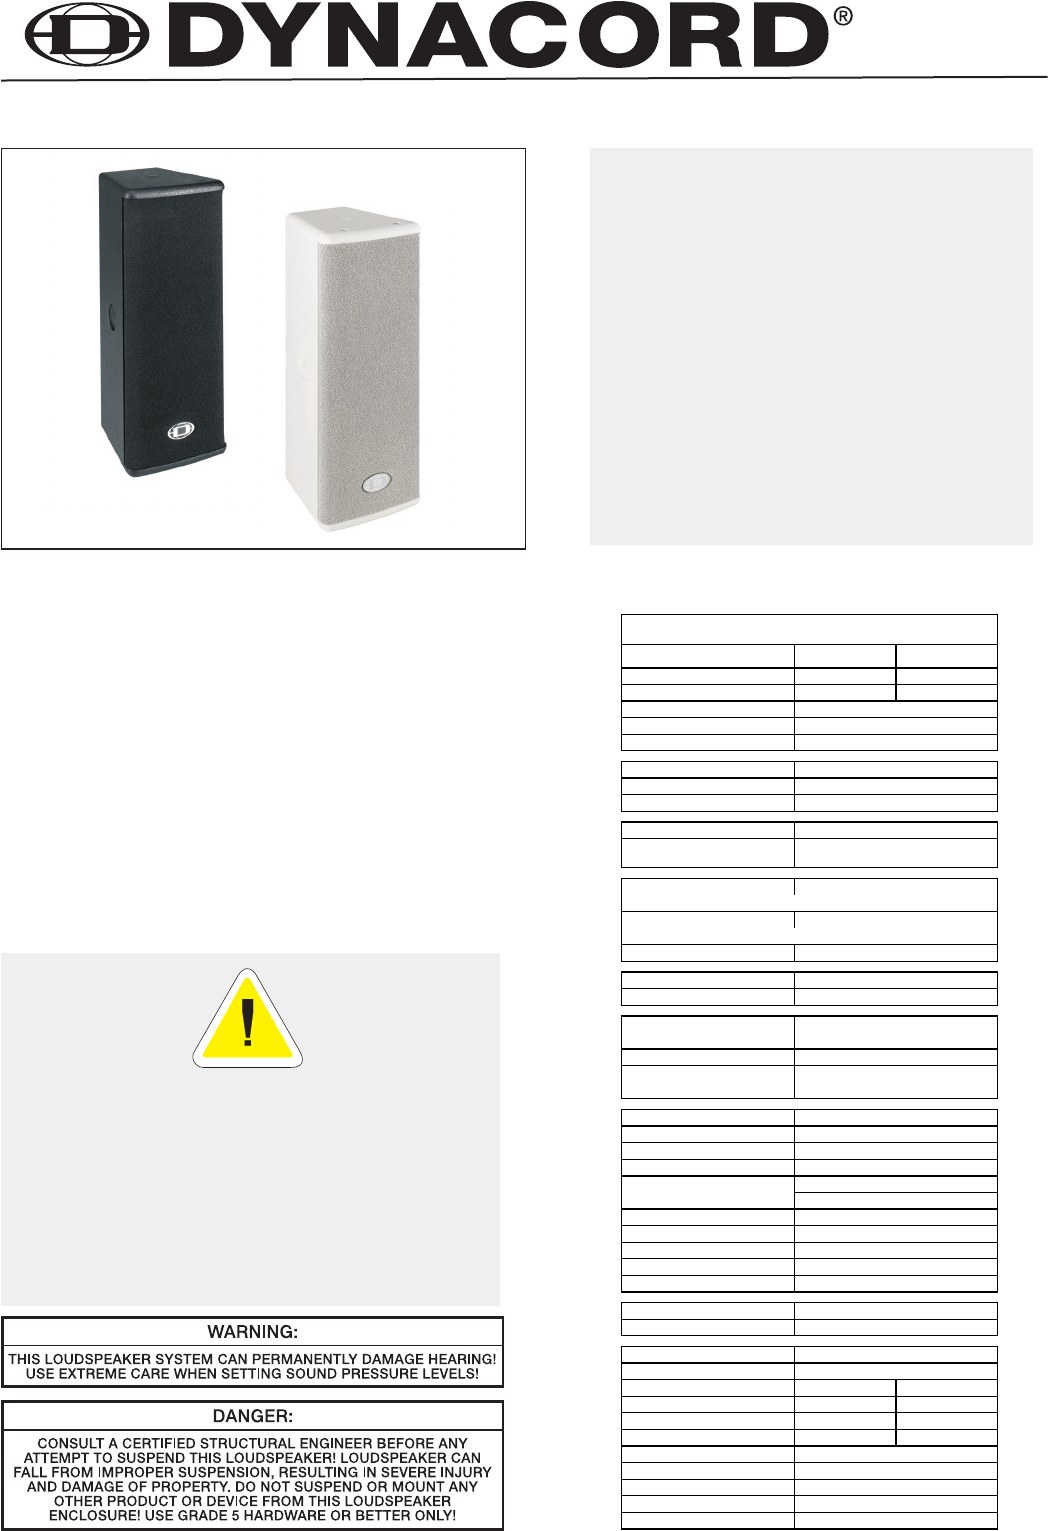 Dynacord Speaker System Vl262 User Guide Manualsonline Com border=